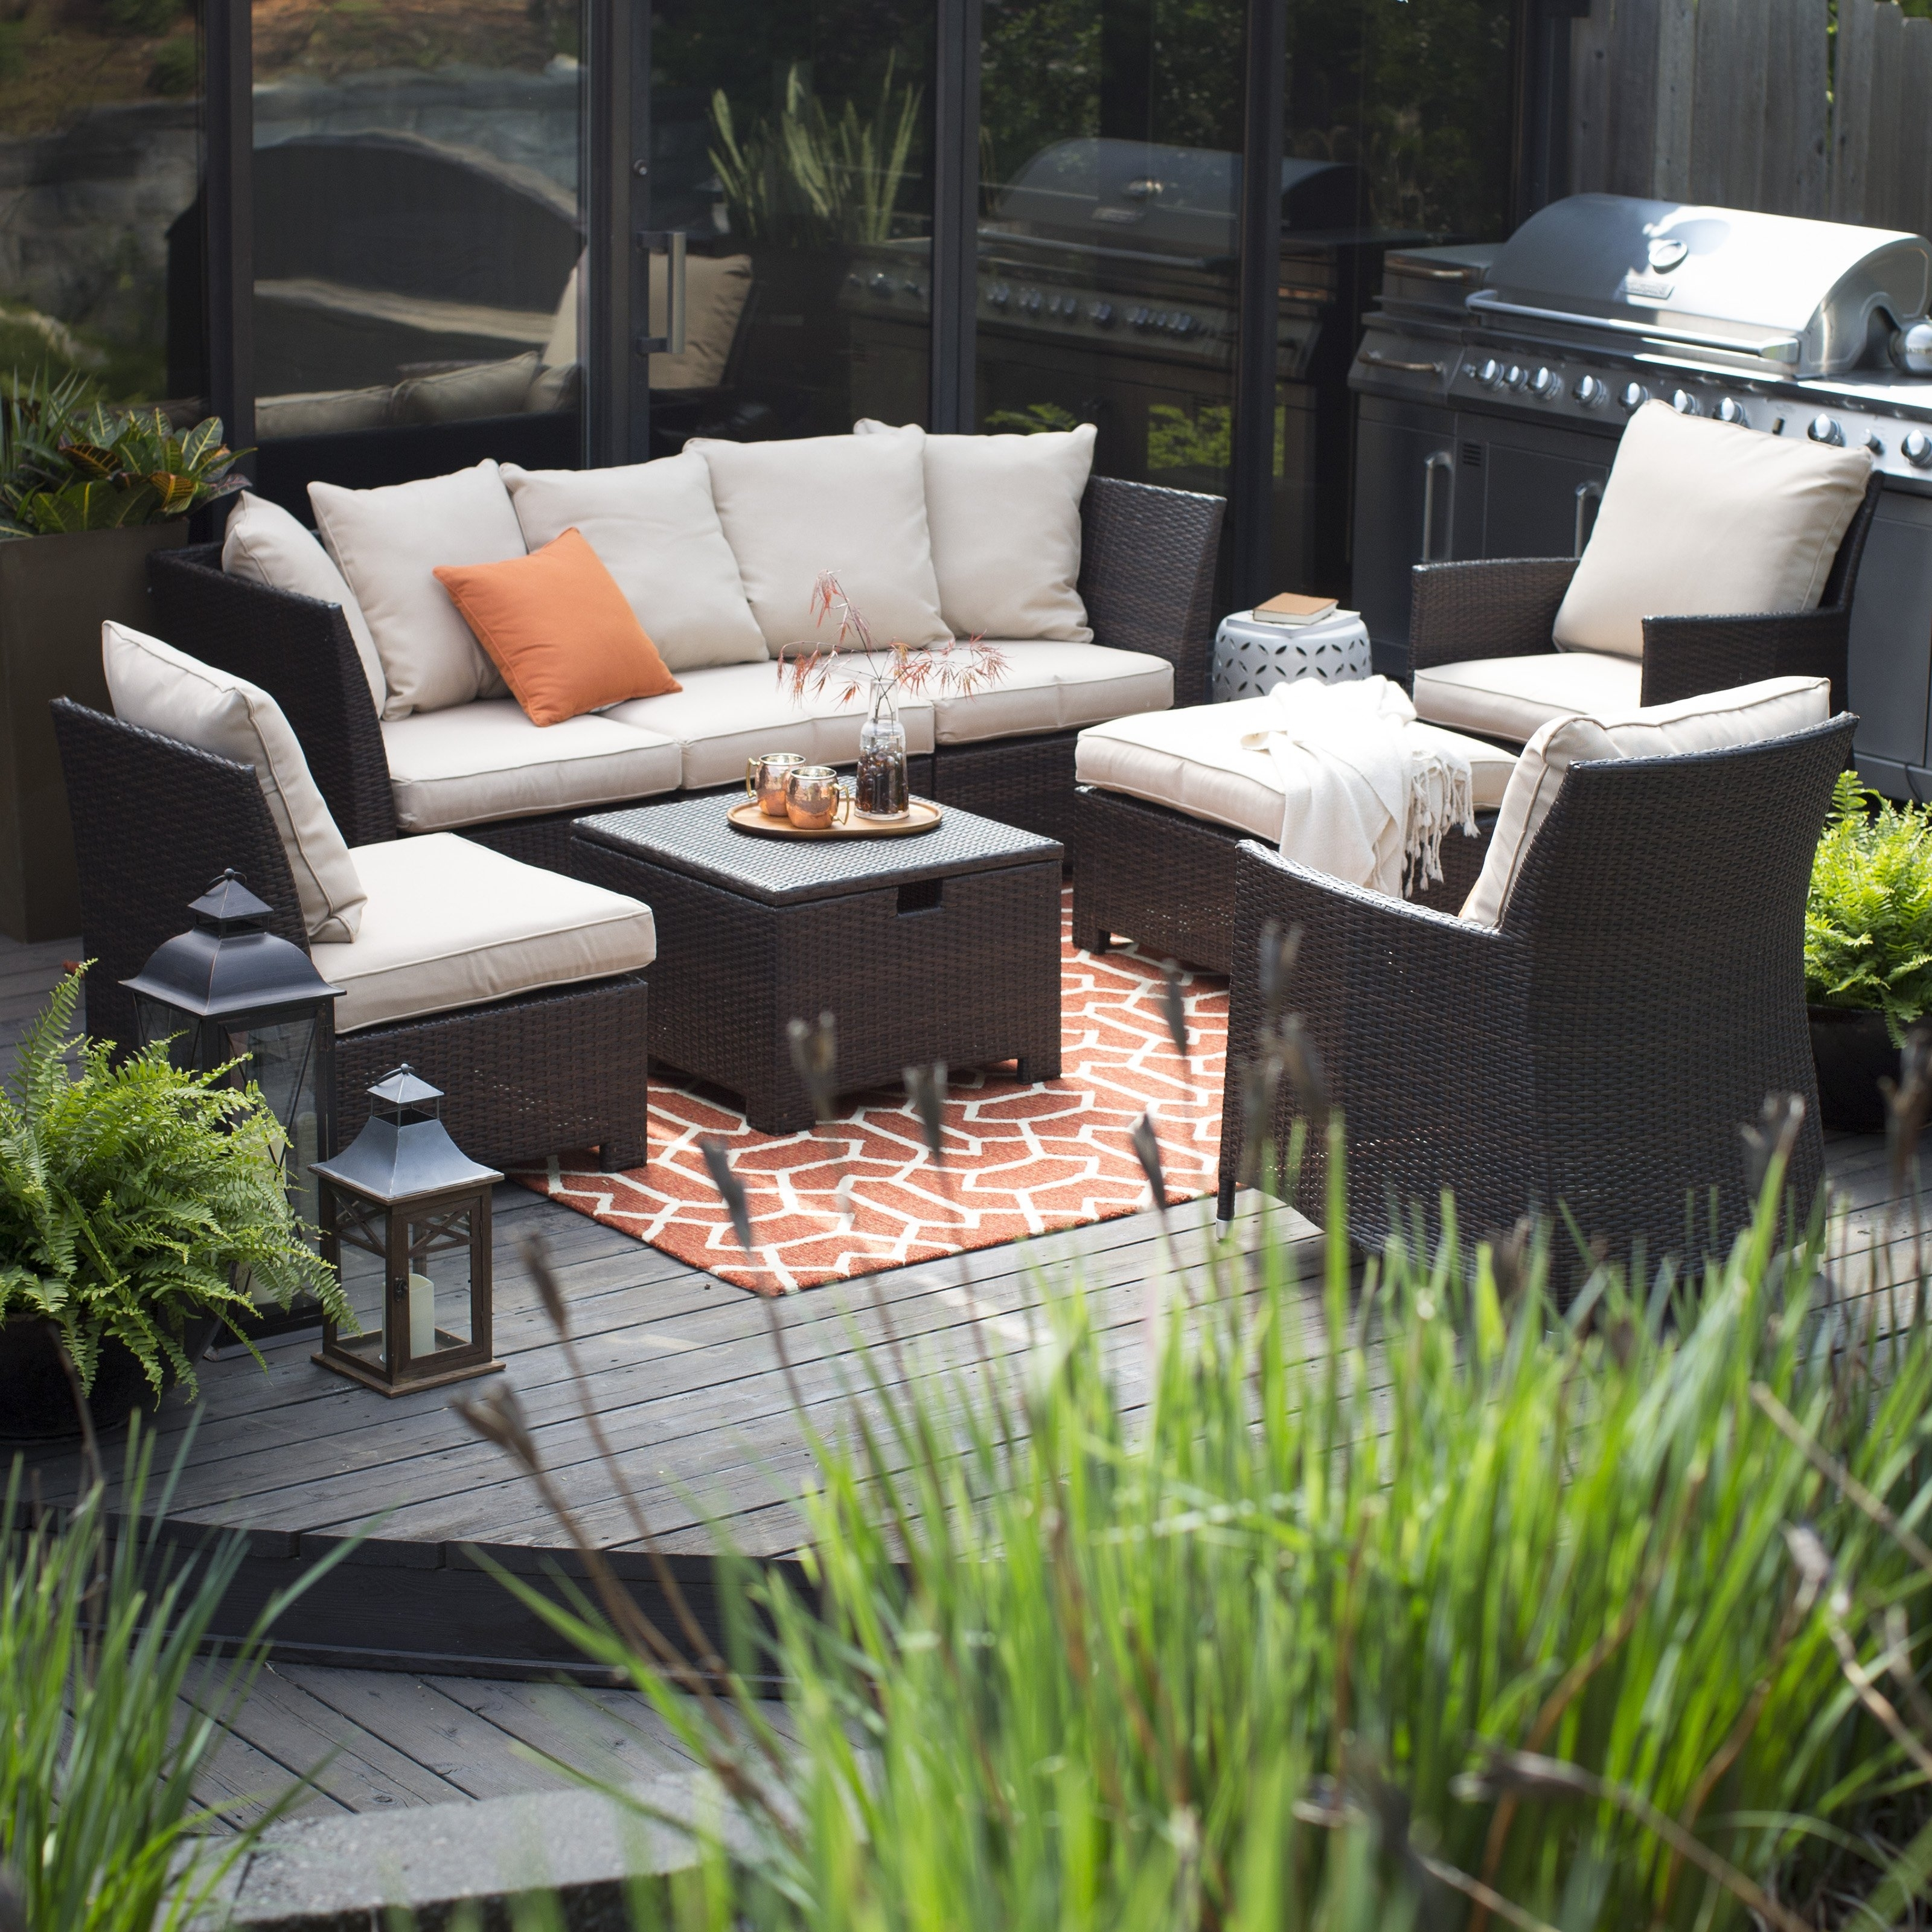 Patio Conversation Sets With Ottomans Within Most Current Furniture: Appealing Dark Wicker Sofa With White Cushions And Wicker (View 8 of 15)